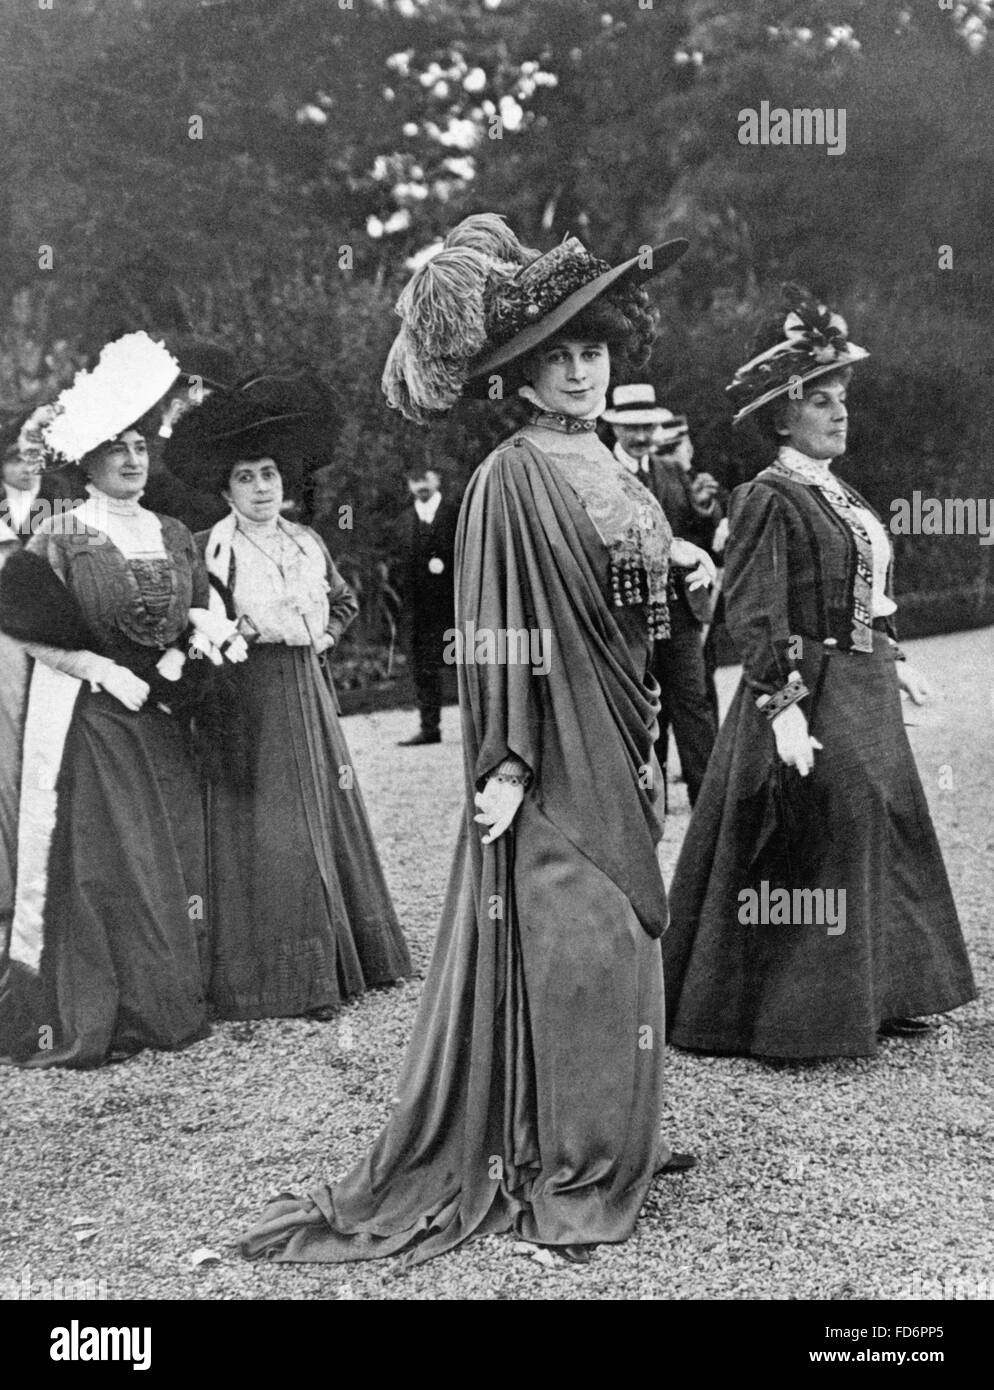 Parisian women's fashion, 1908